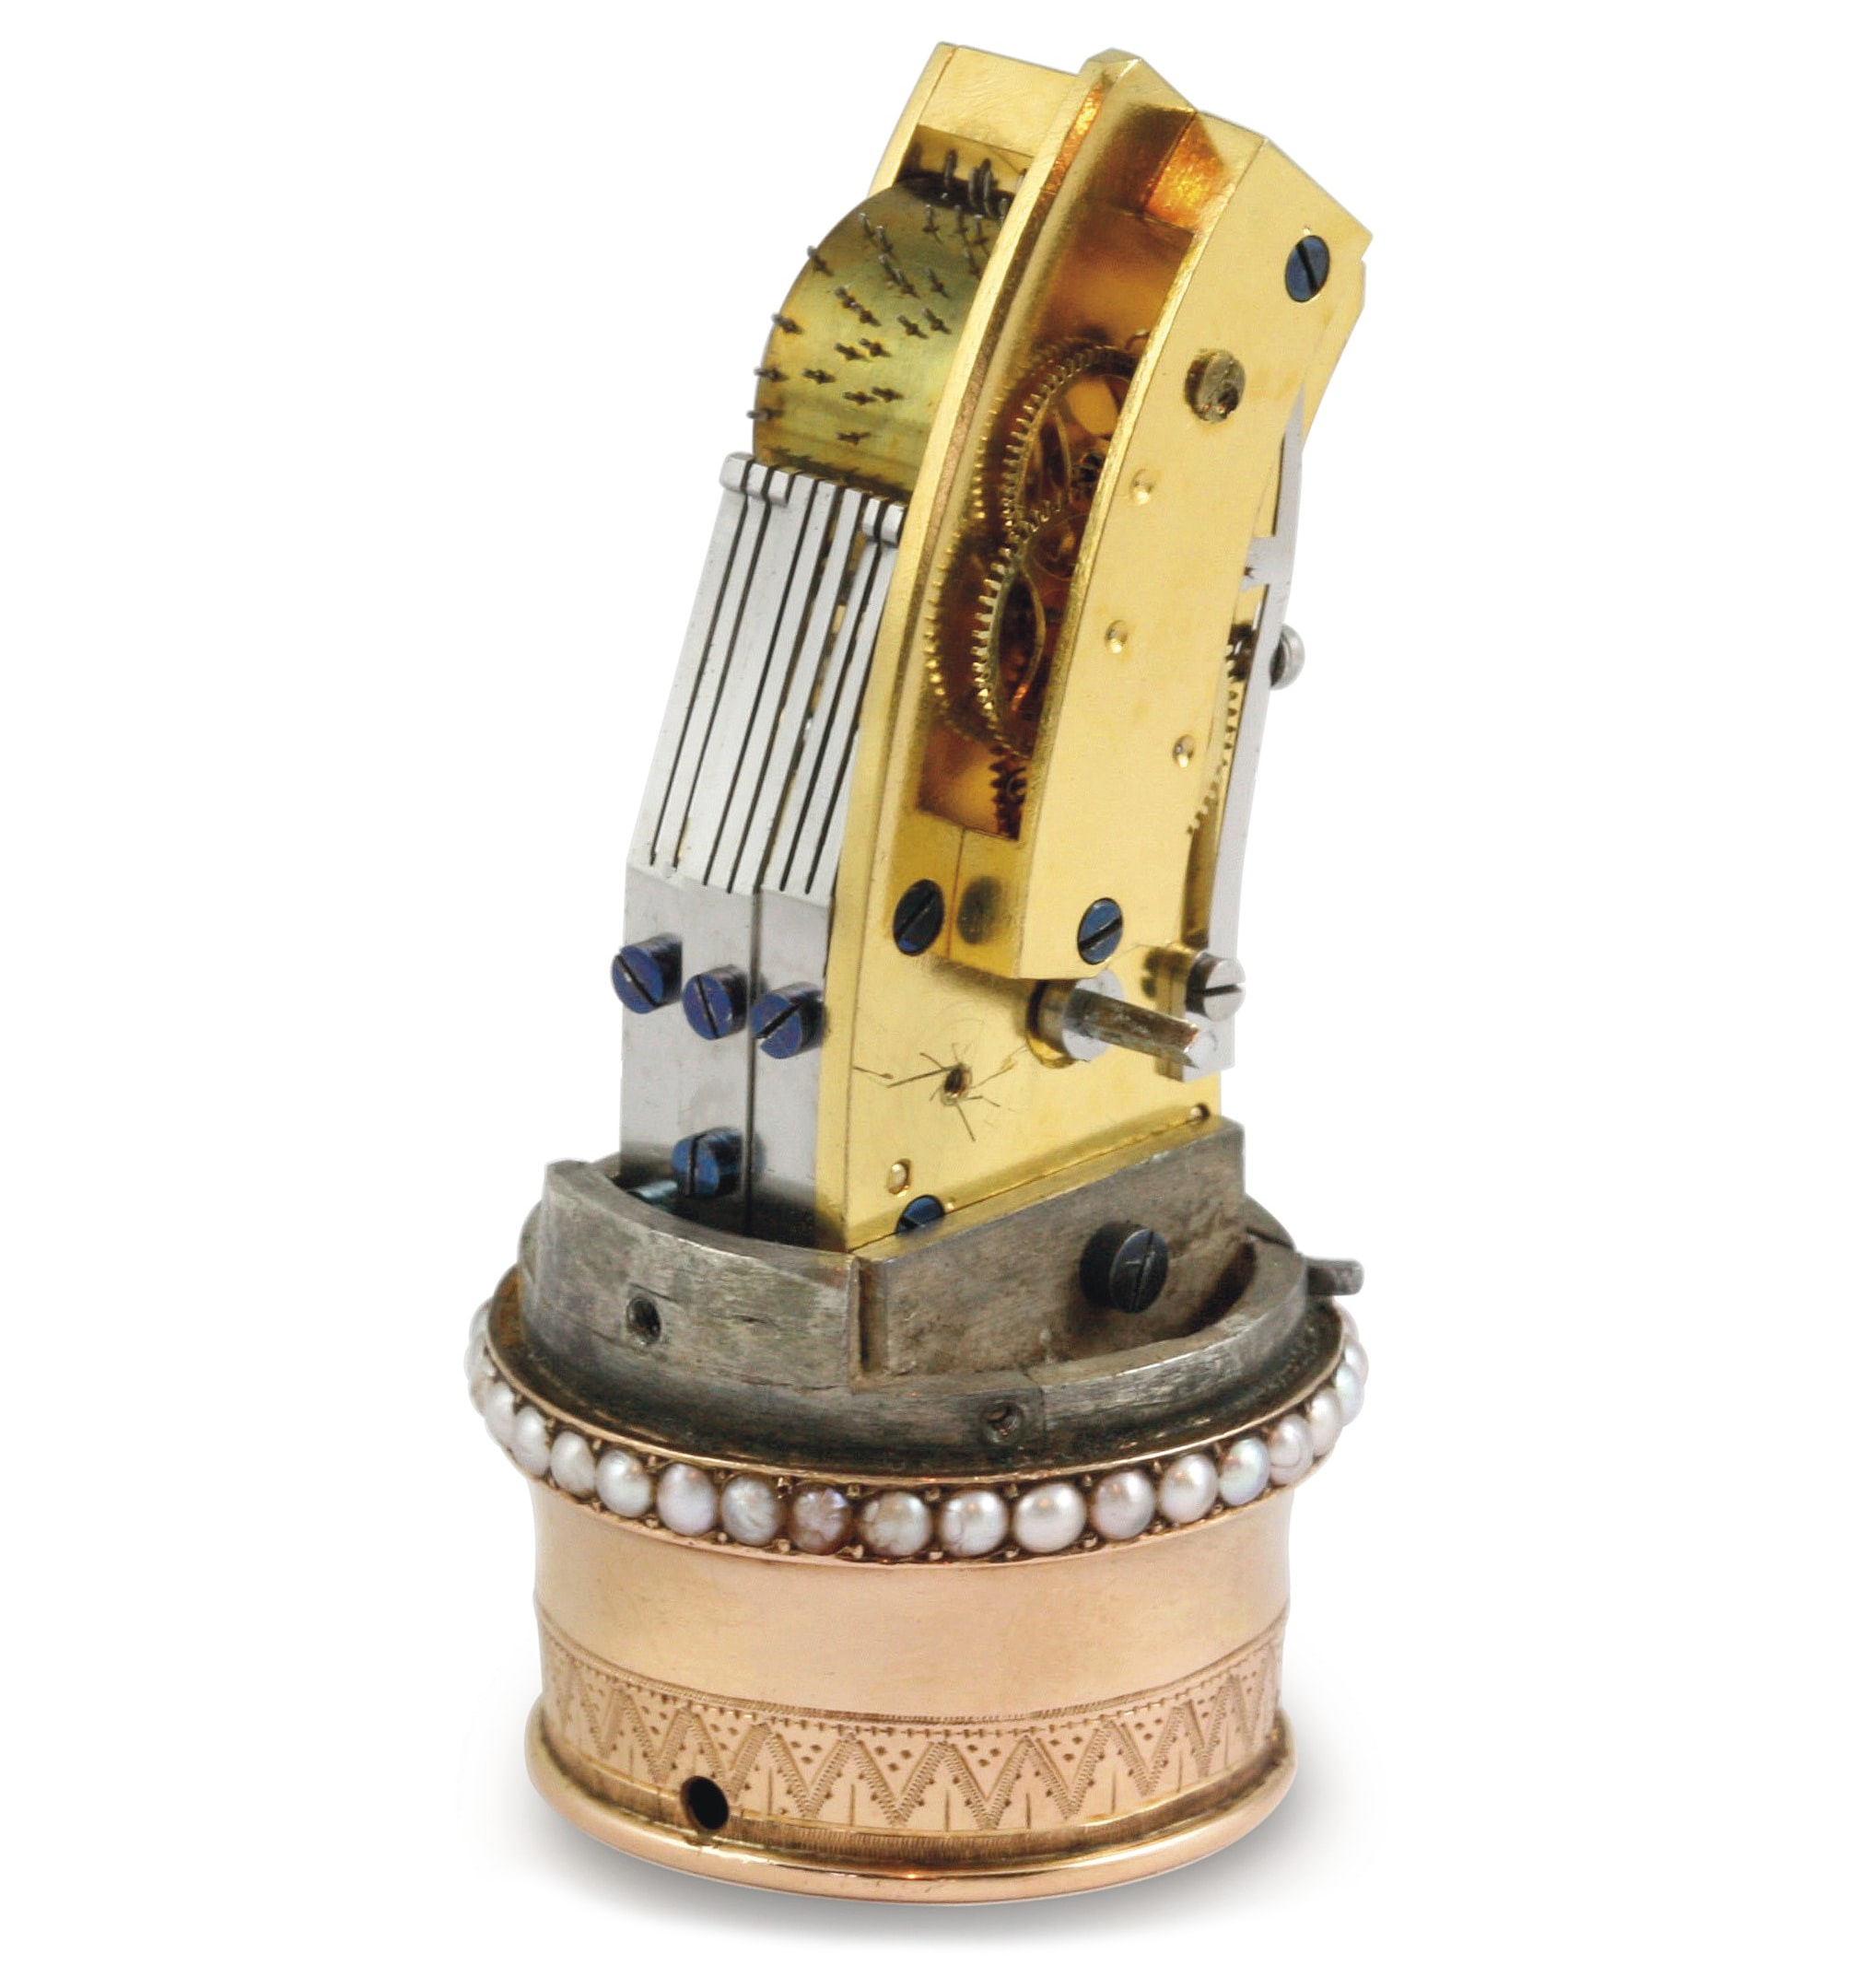 Music box fitted into the head of a cane, Geneva 1810 Just Because: At Christie's 'Rare Watches And A Rolex Afternoon,' A Rare Watch That Isn't A Rolex Just Because: At Christie's 'Rare Watches And A Rolex Afternoon,' A Rare Watch That Isn't A Rolex 54367388b